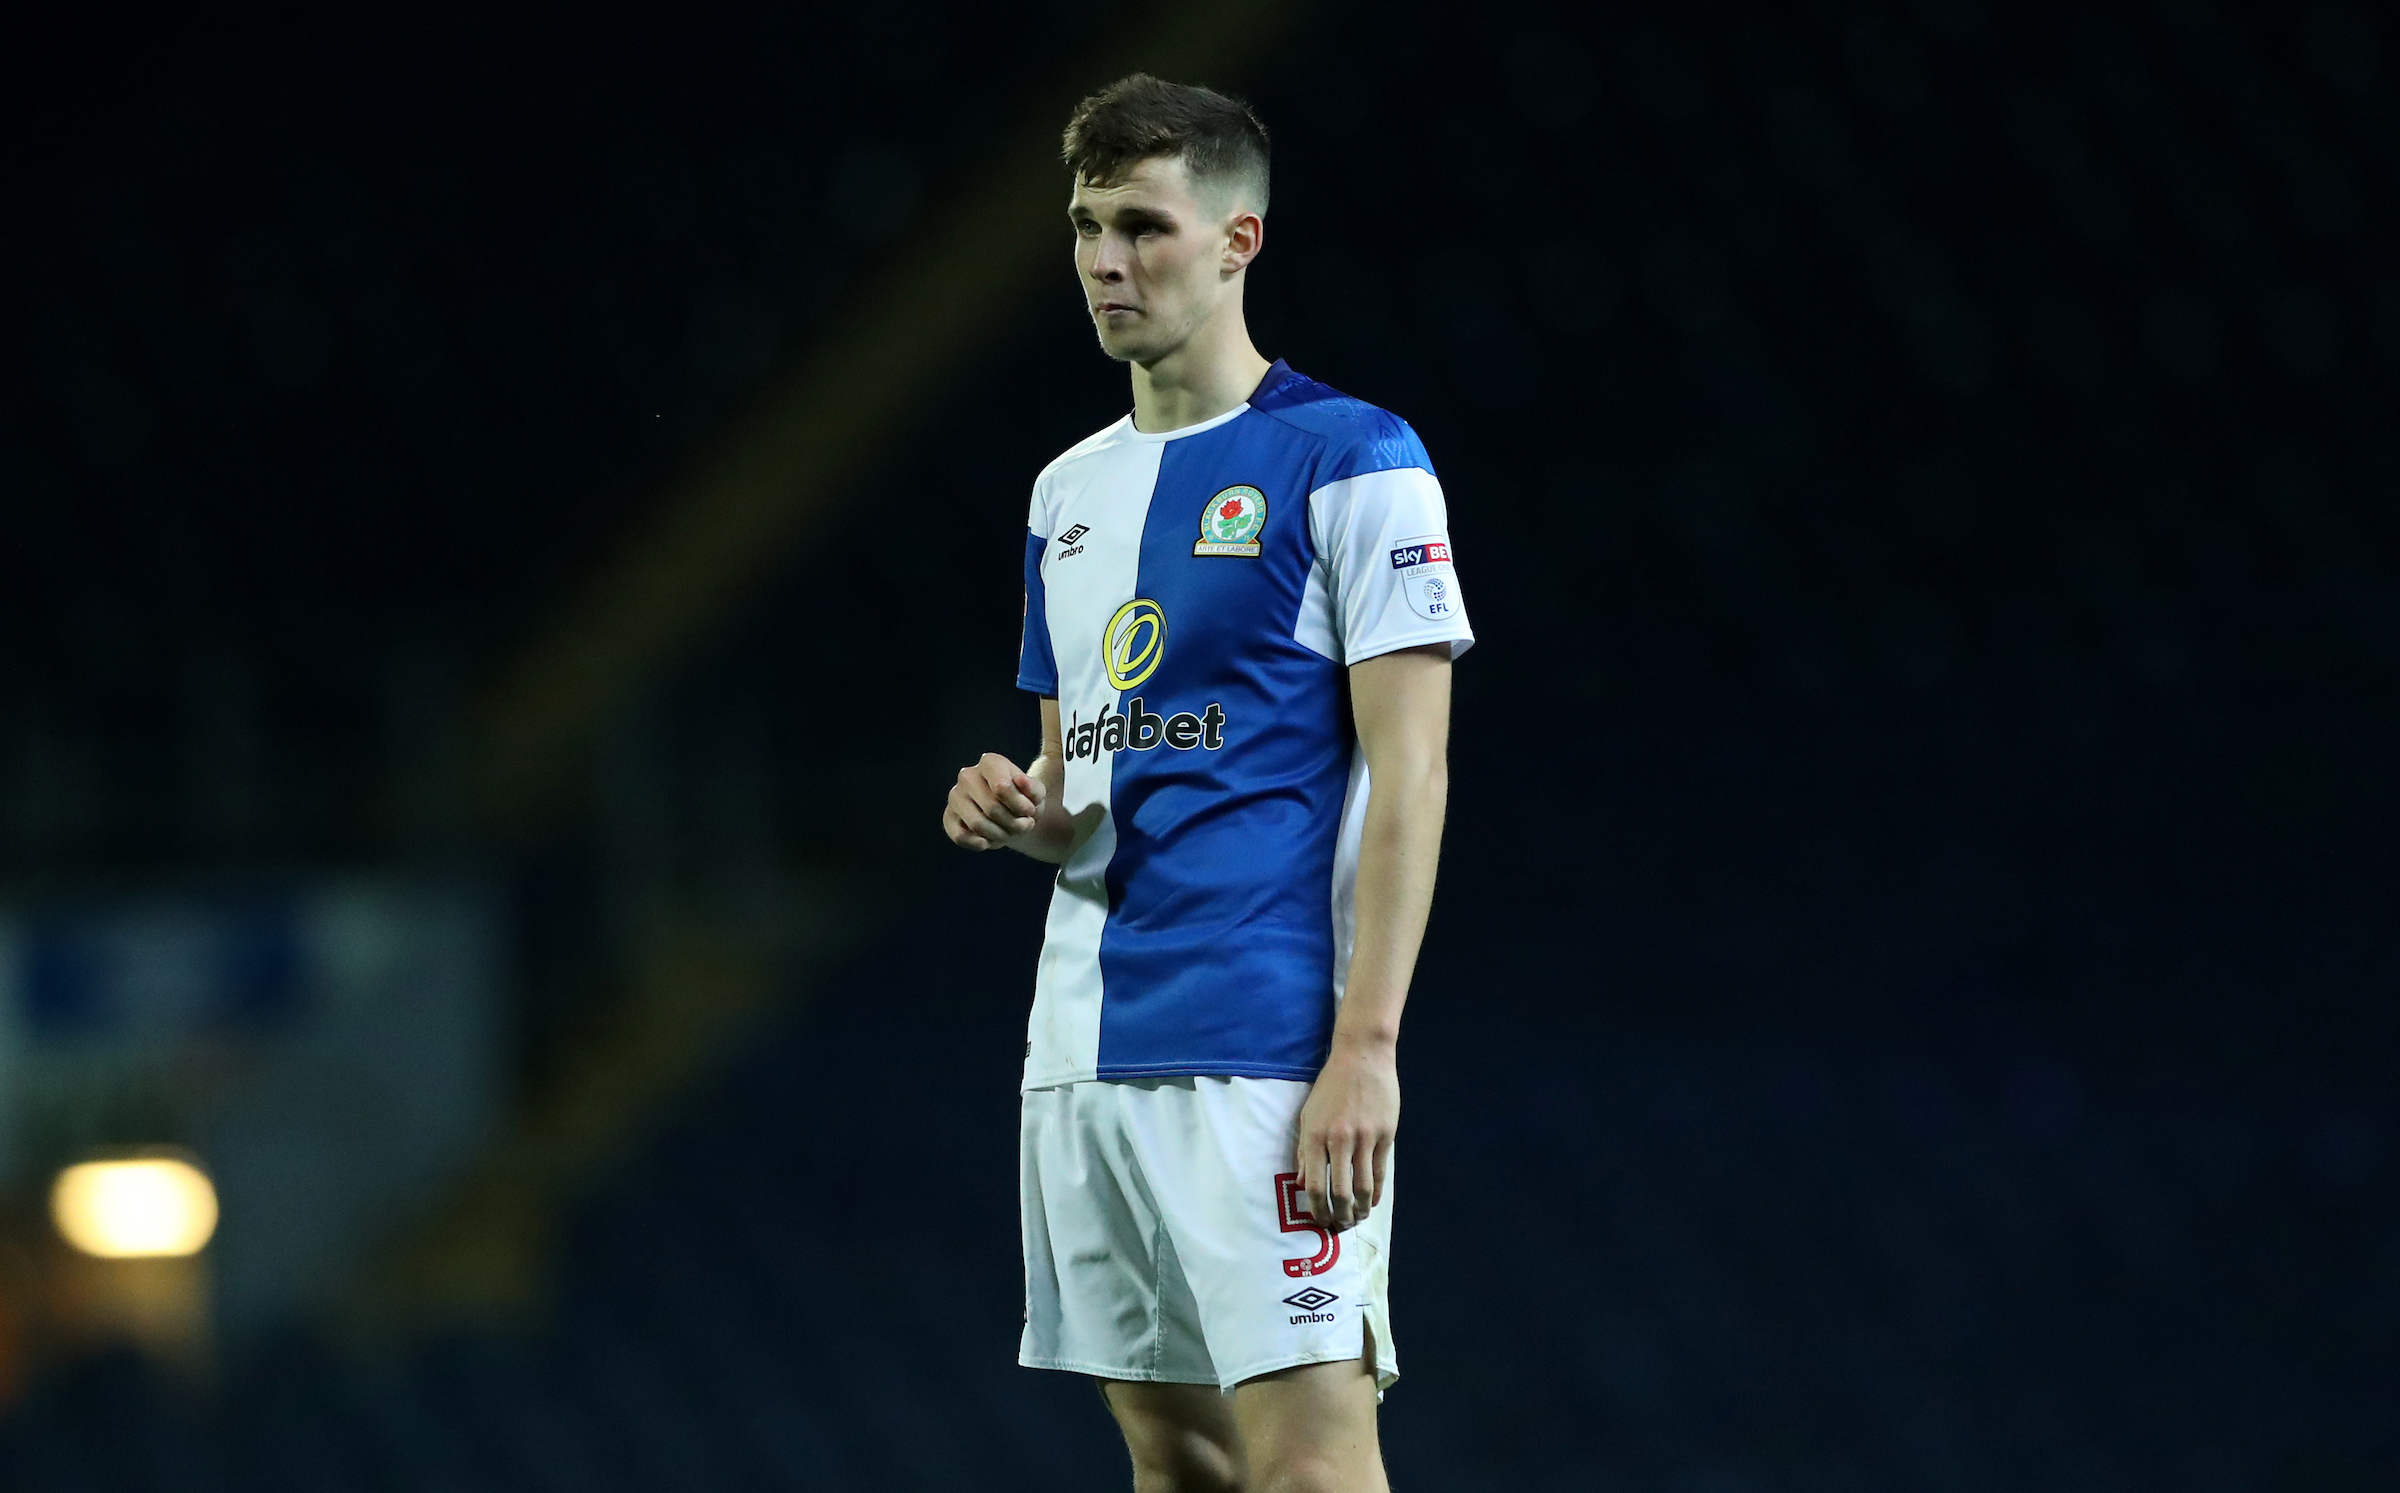 Sam Hart extended his stay at Rovers earlier this year